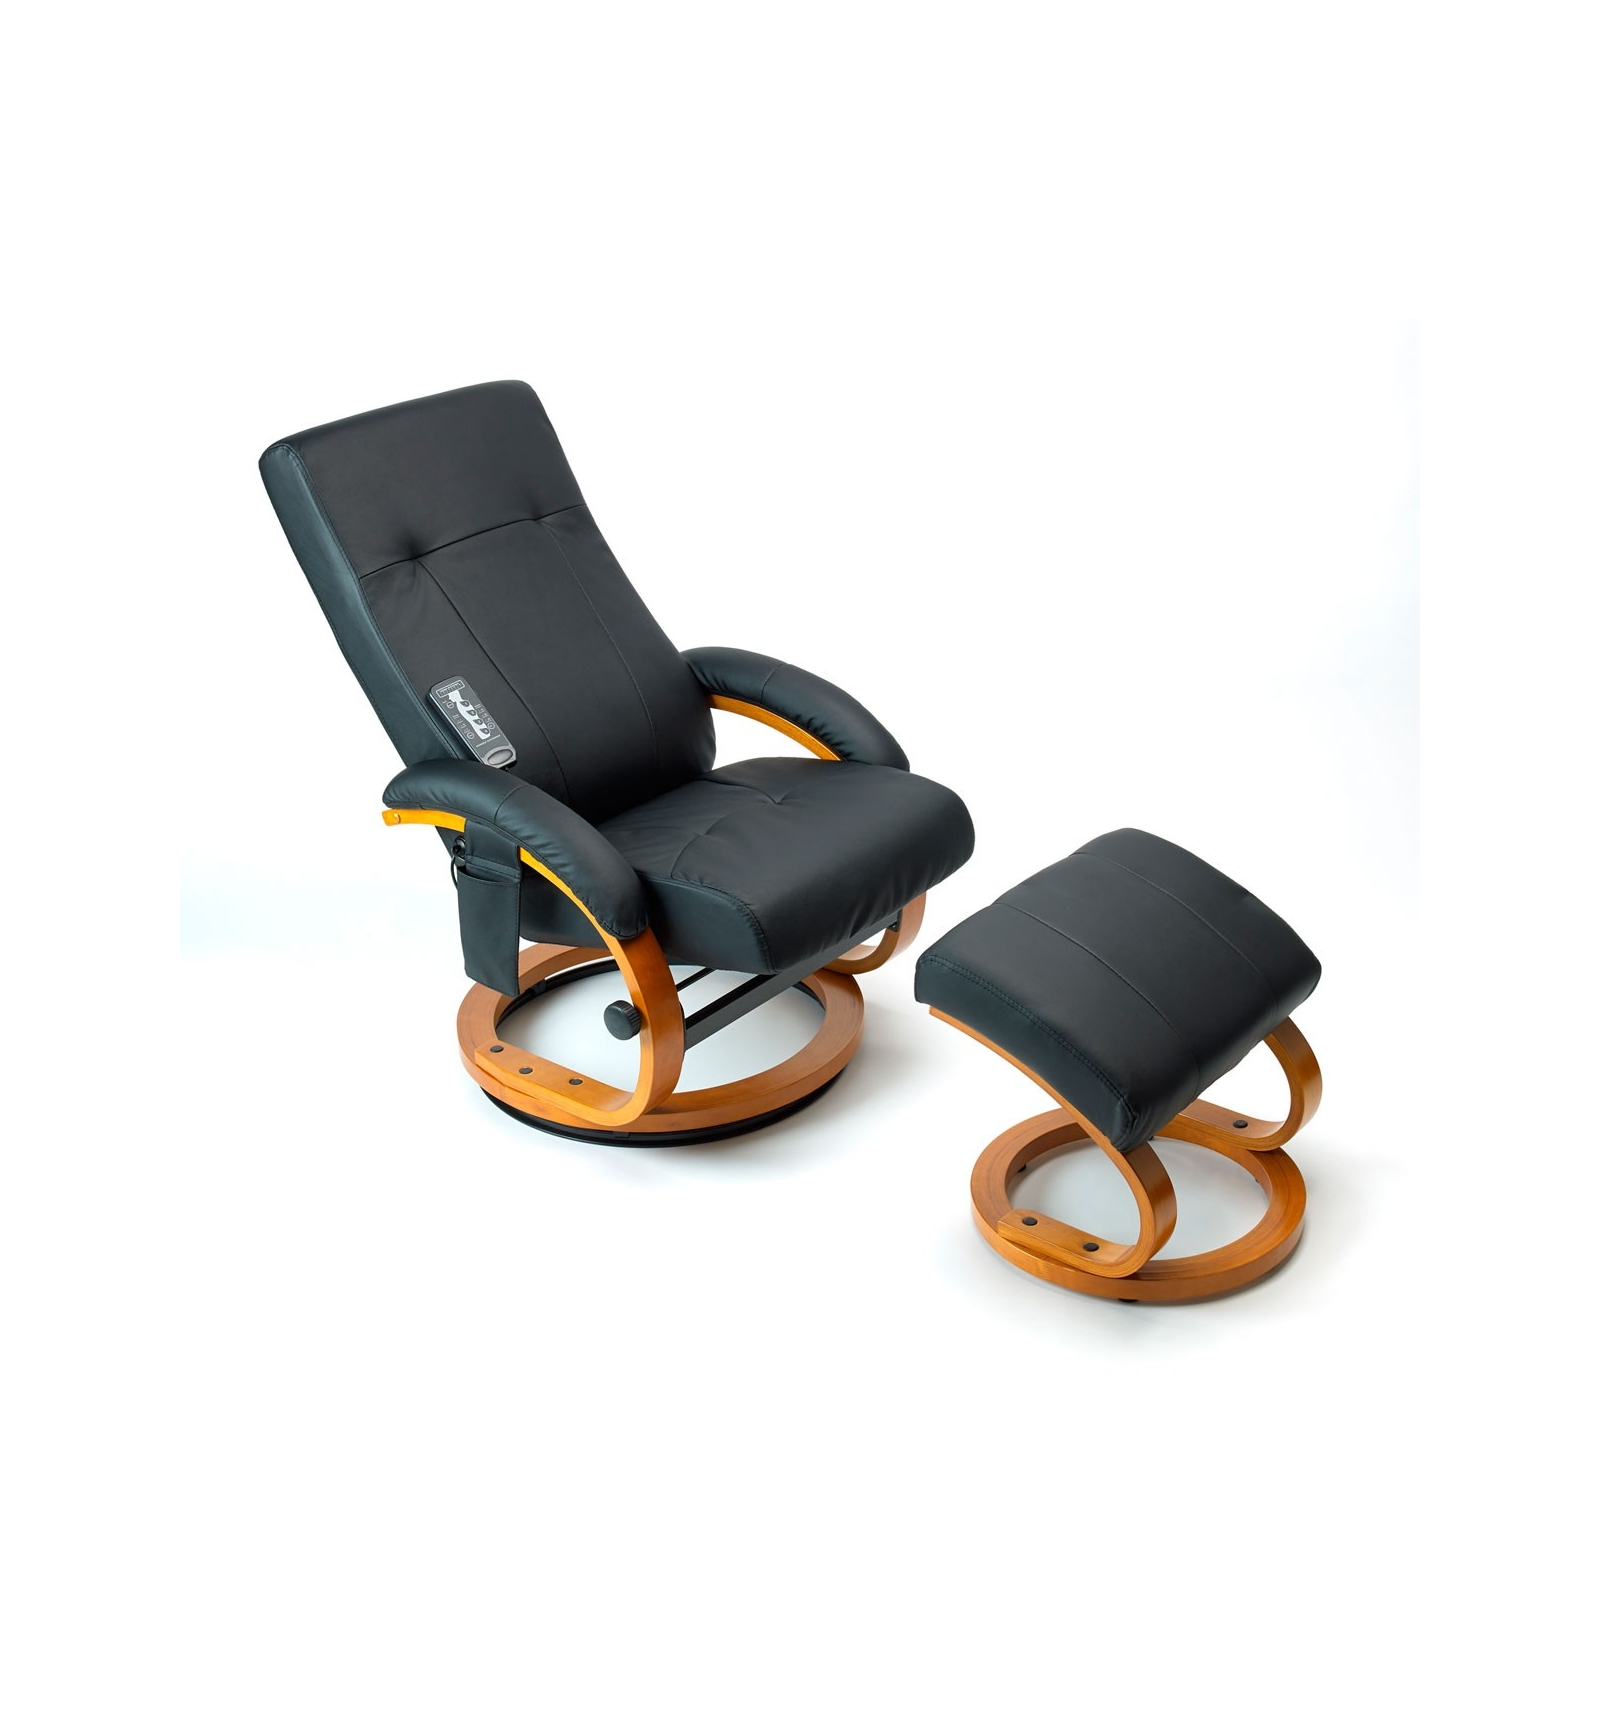 Fautueil Fauteuil Relax Morphee